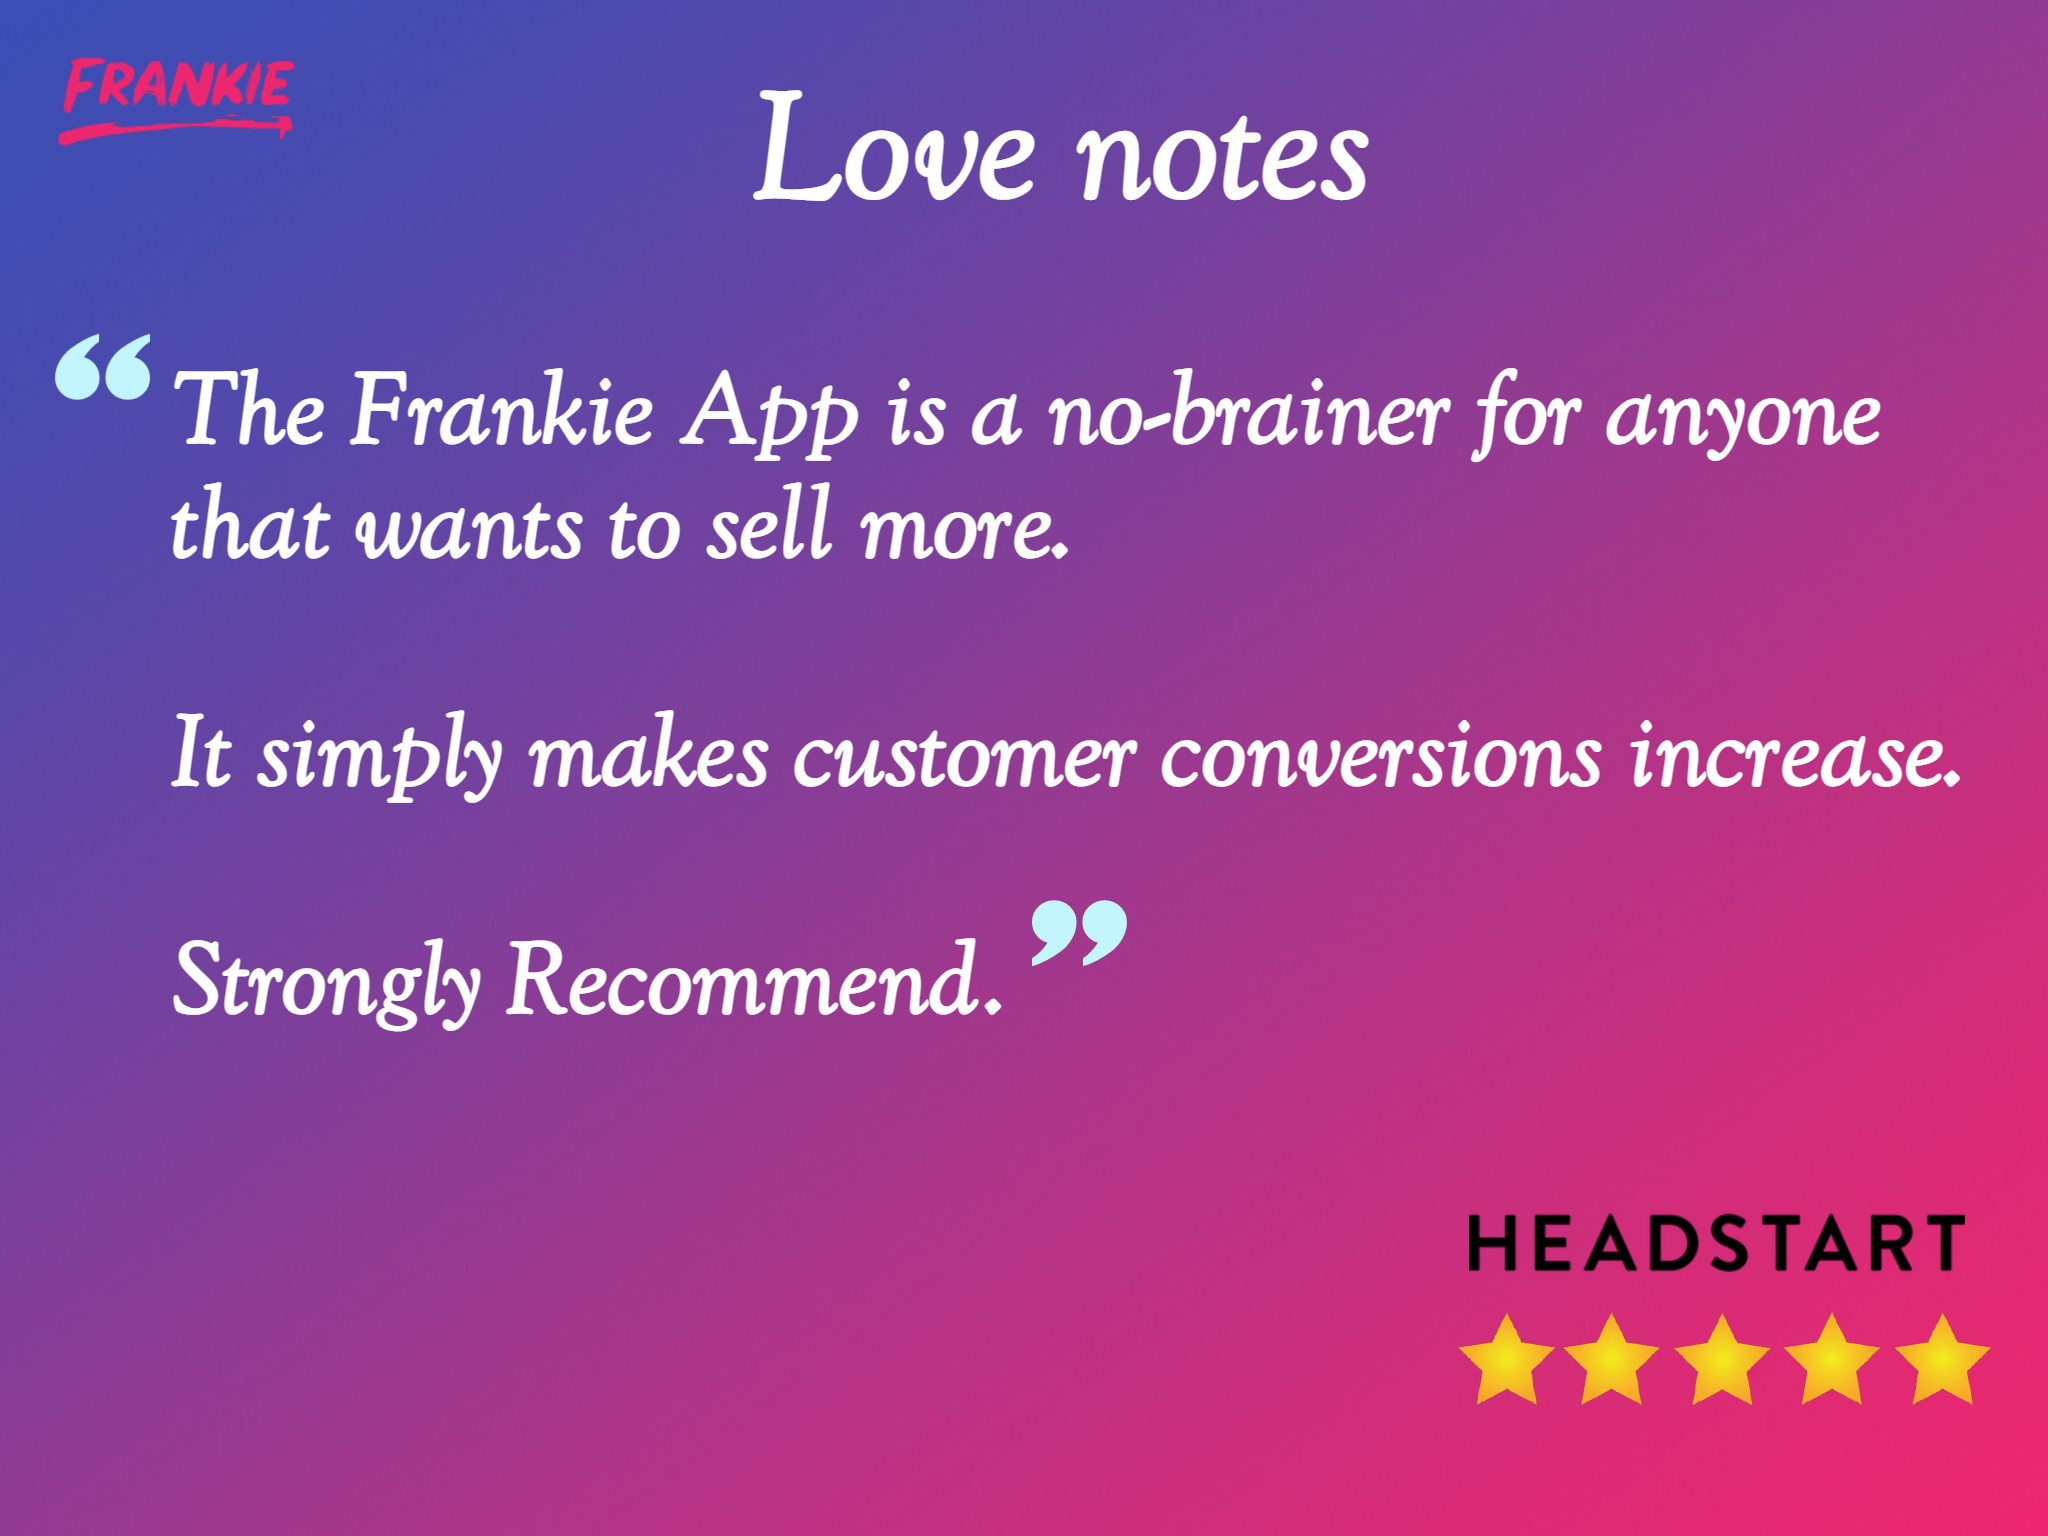 Frankie Recommendations 5-star review by Headstart